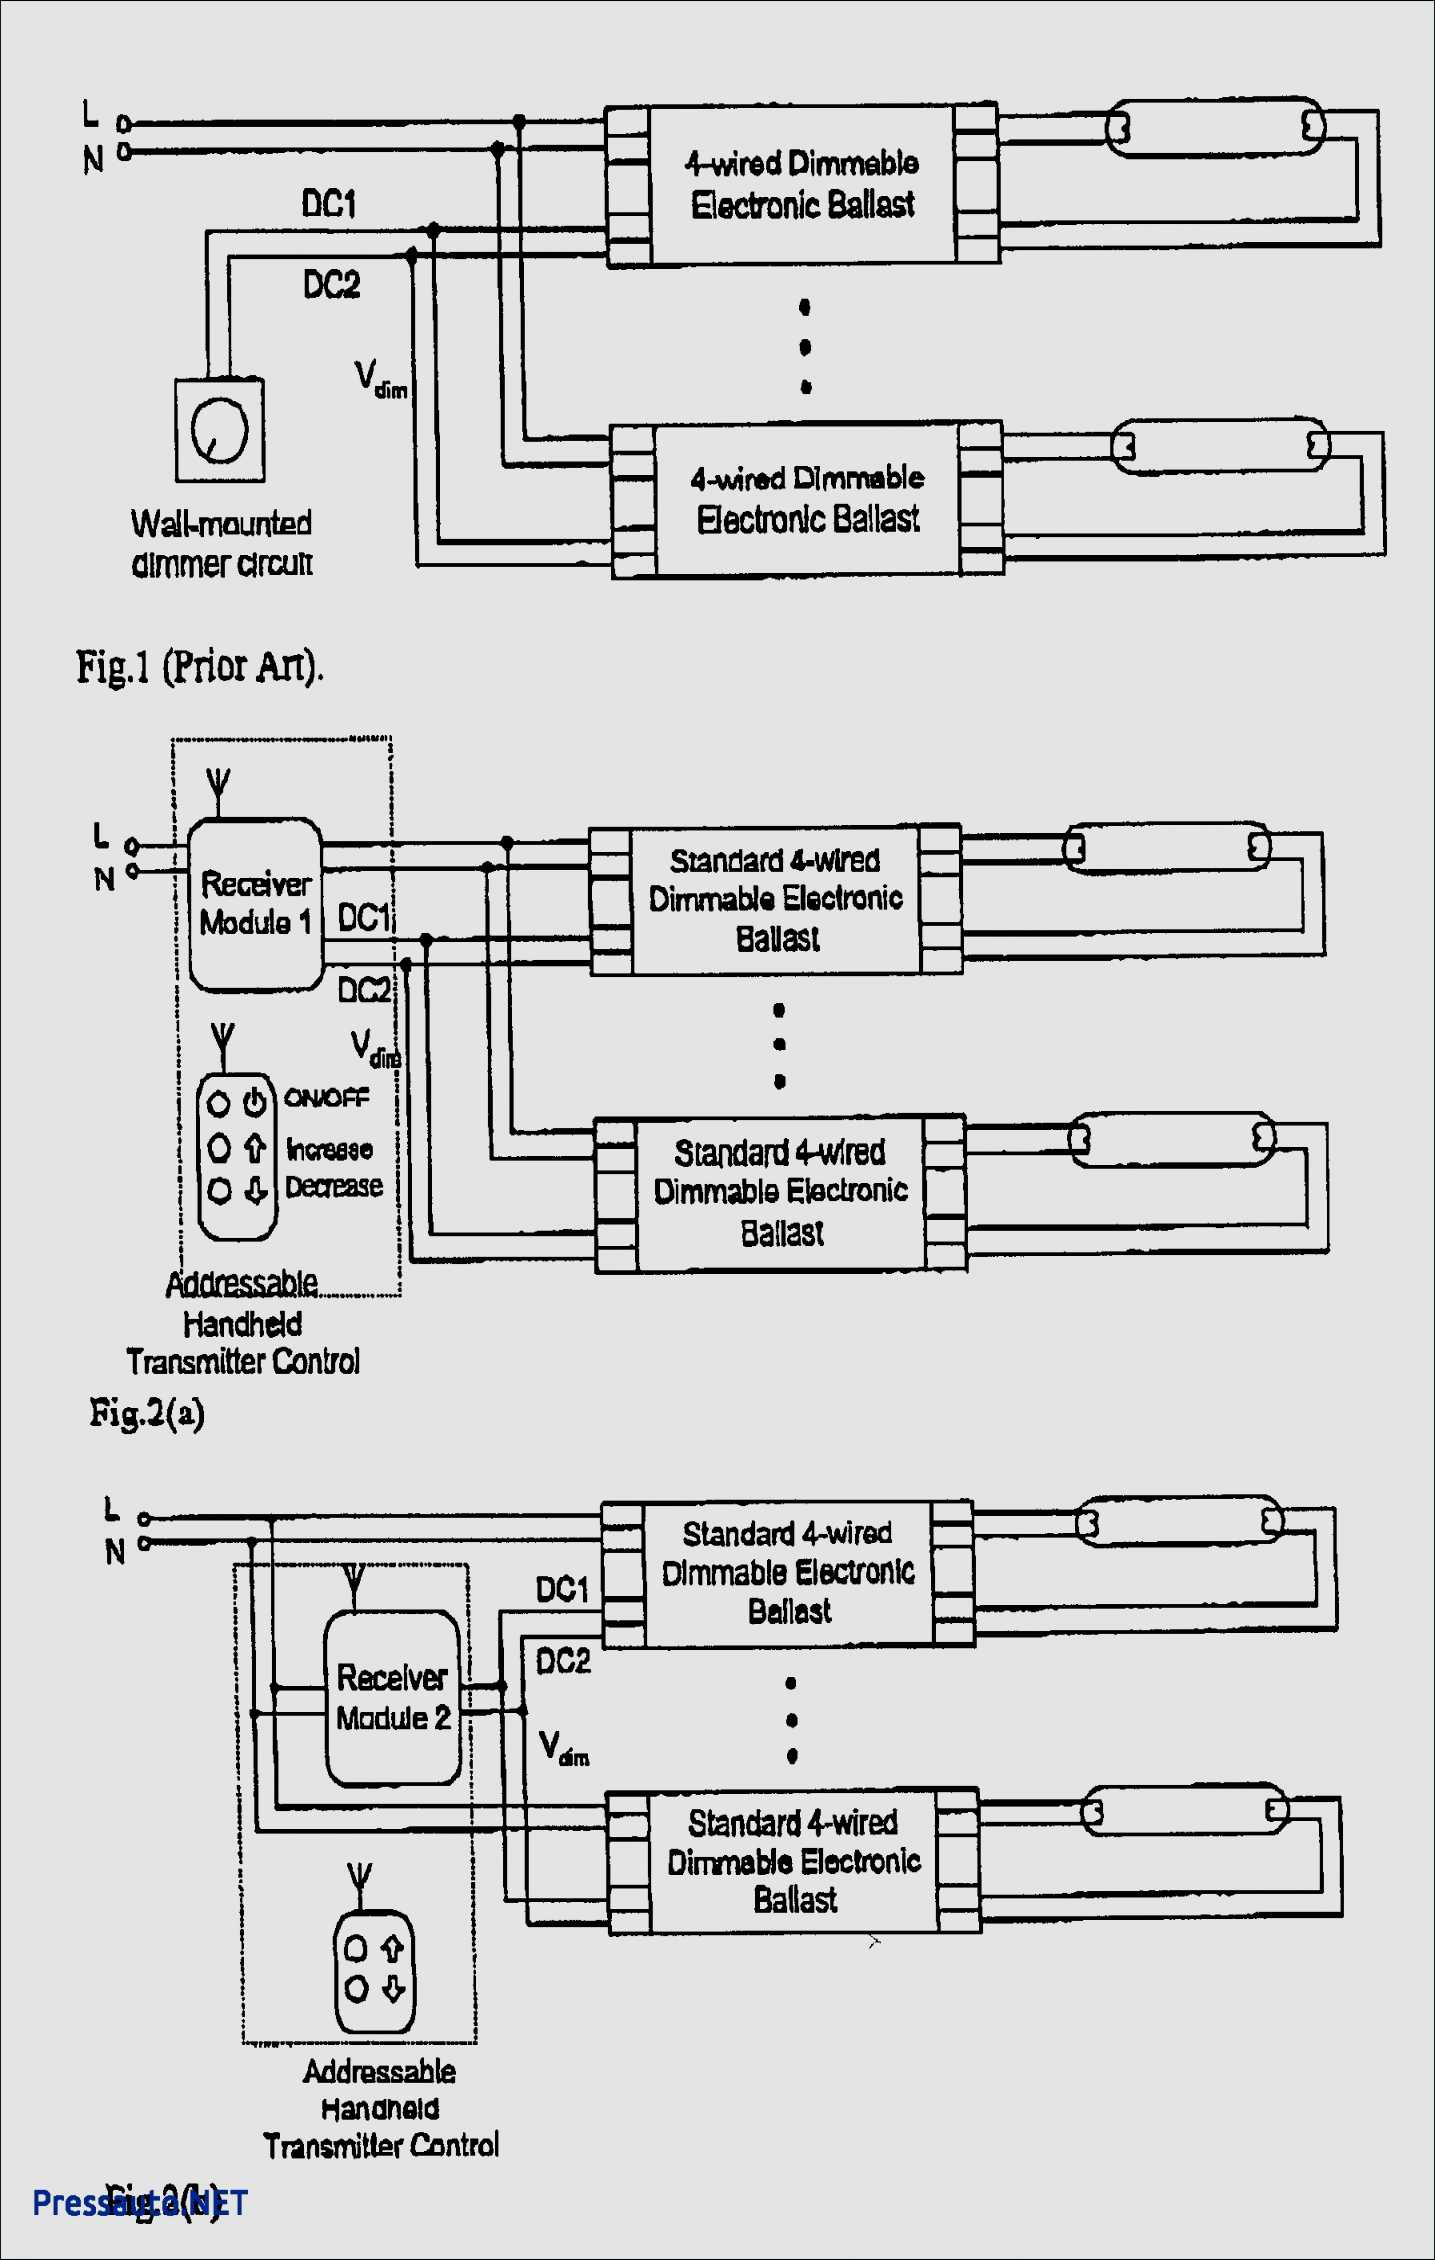 Wiring Diagram Kenwood Kdc 152 | Wiring Diagram - Kenwood Kdc 152 Wiring Diagram